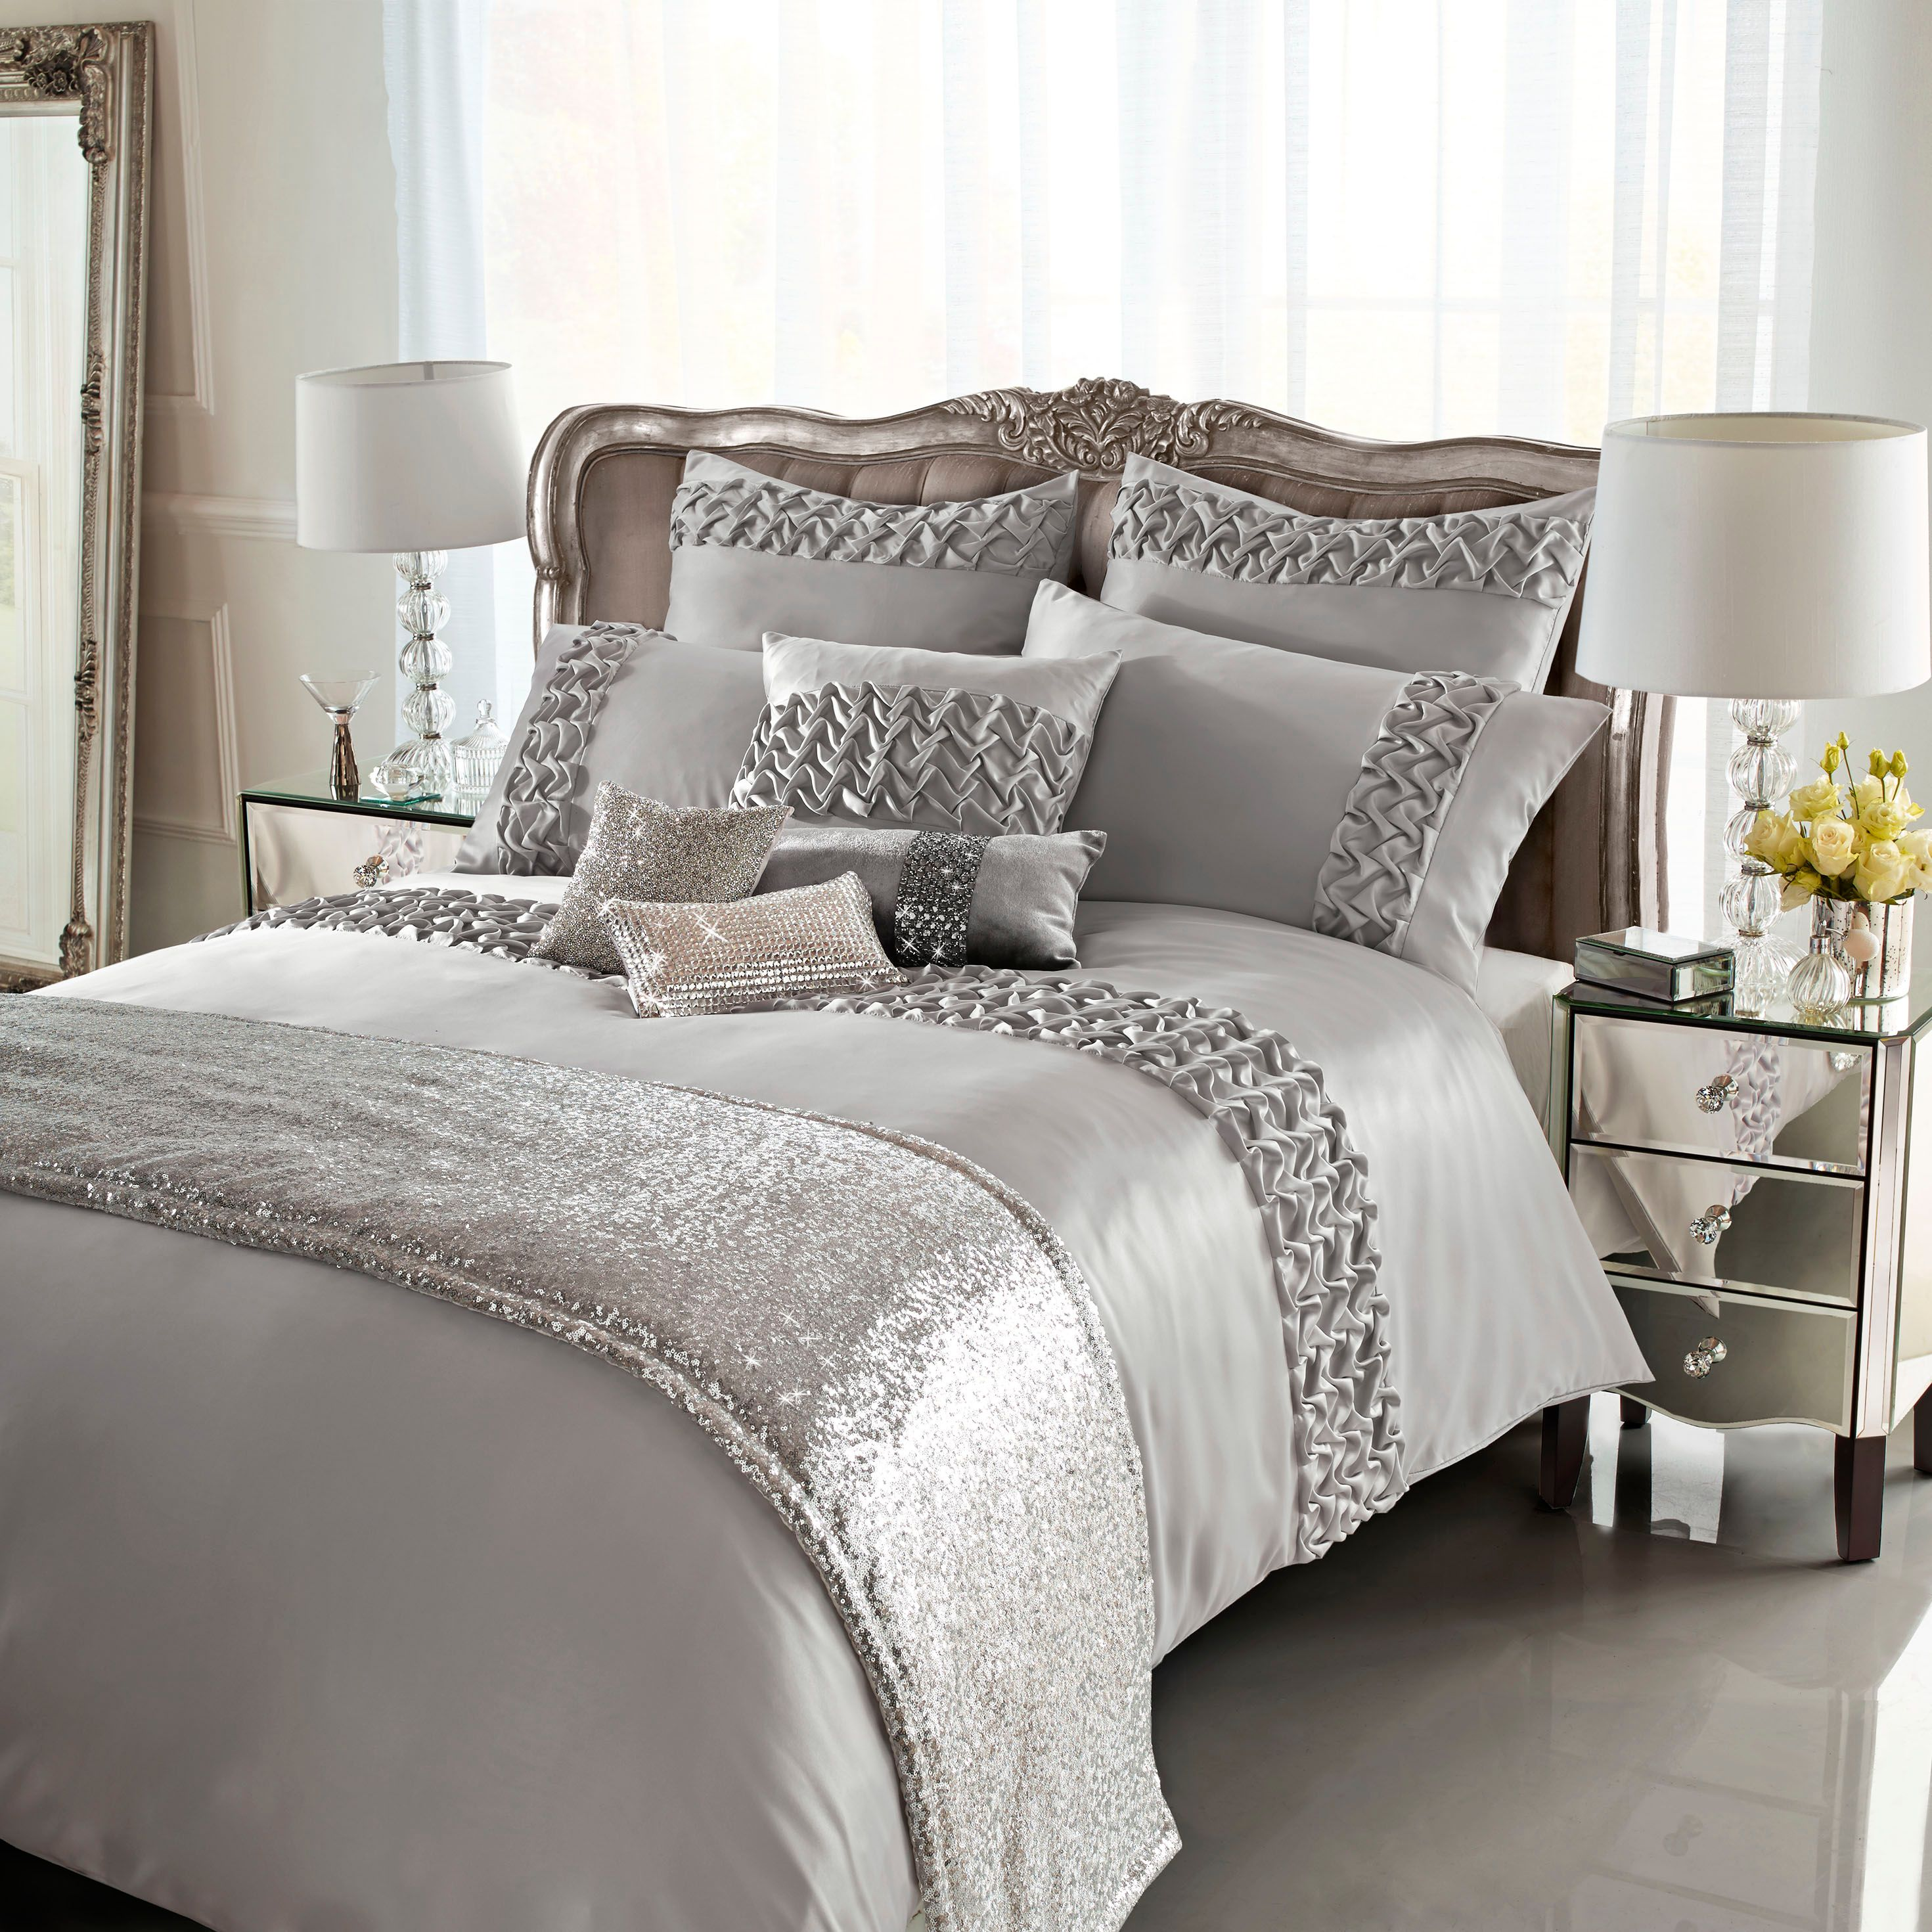 House of fraser curtains and bedding for Housse of fraser